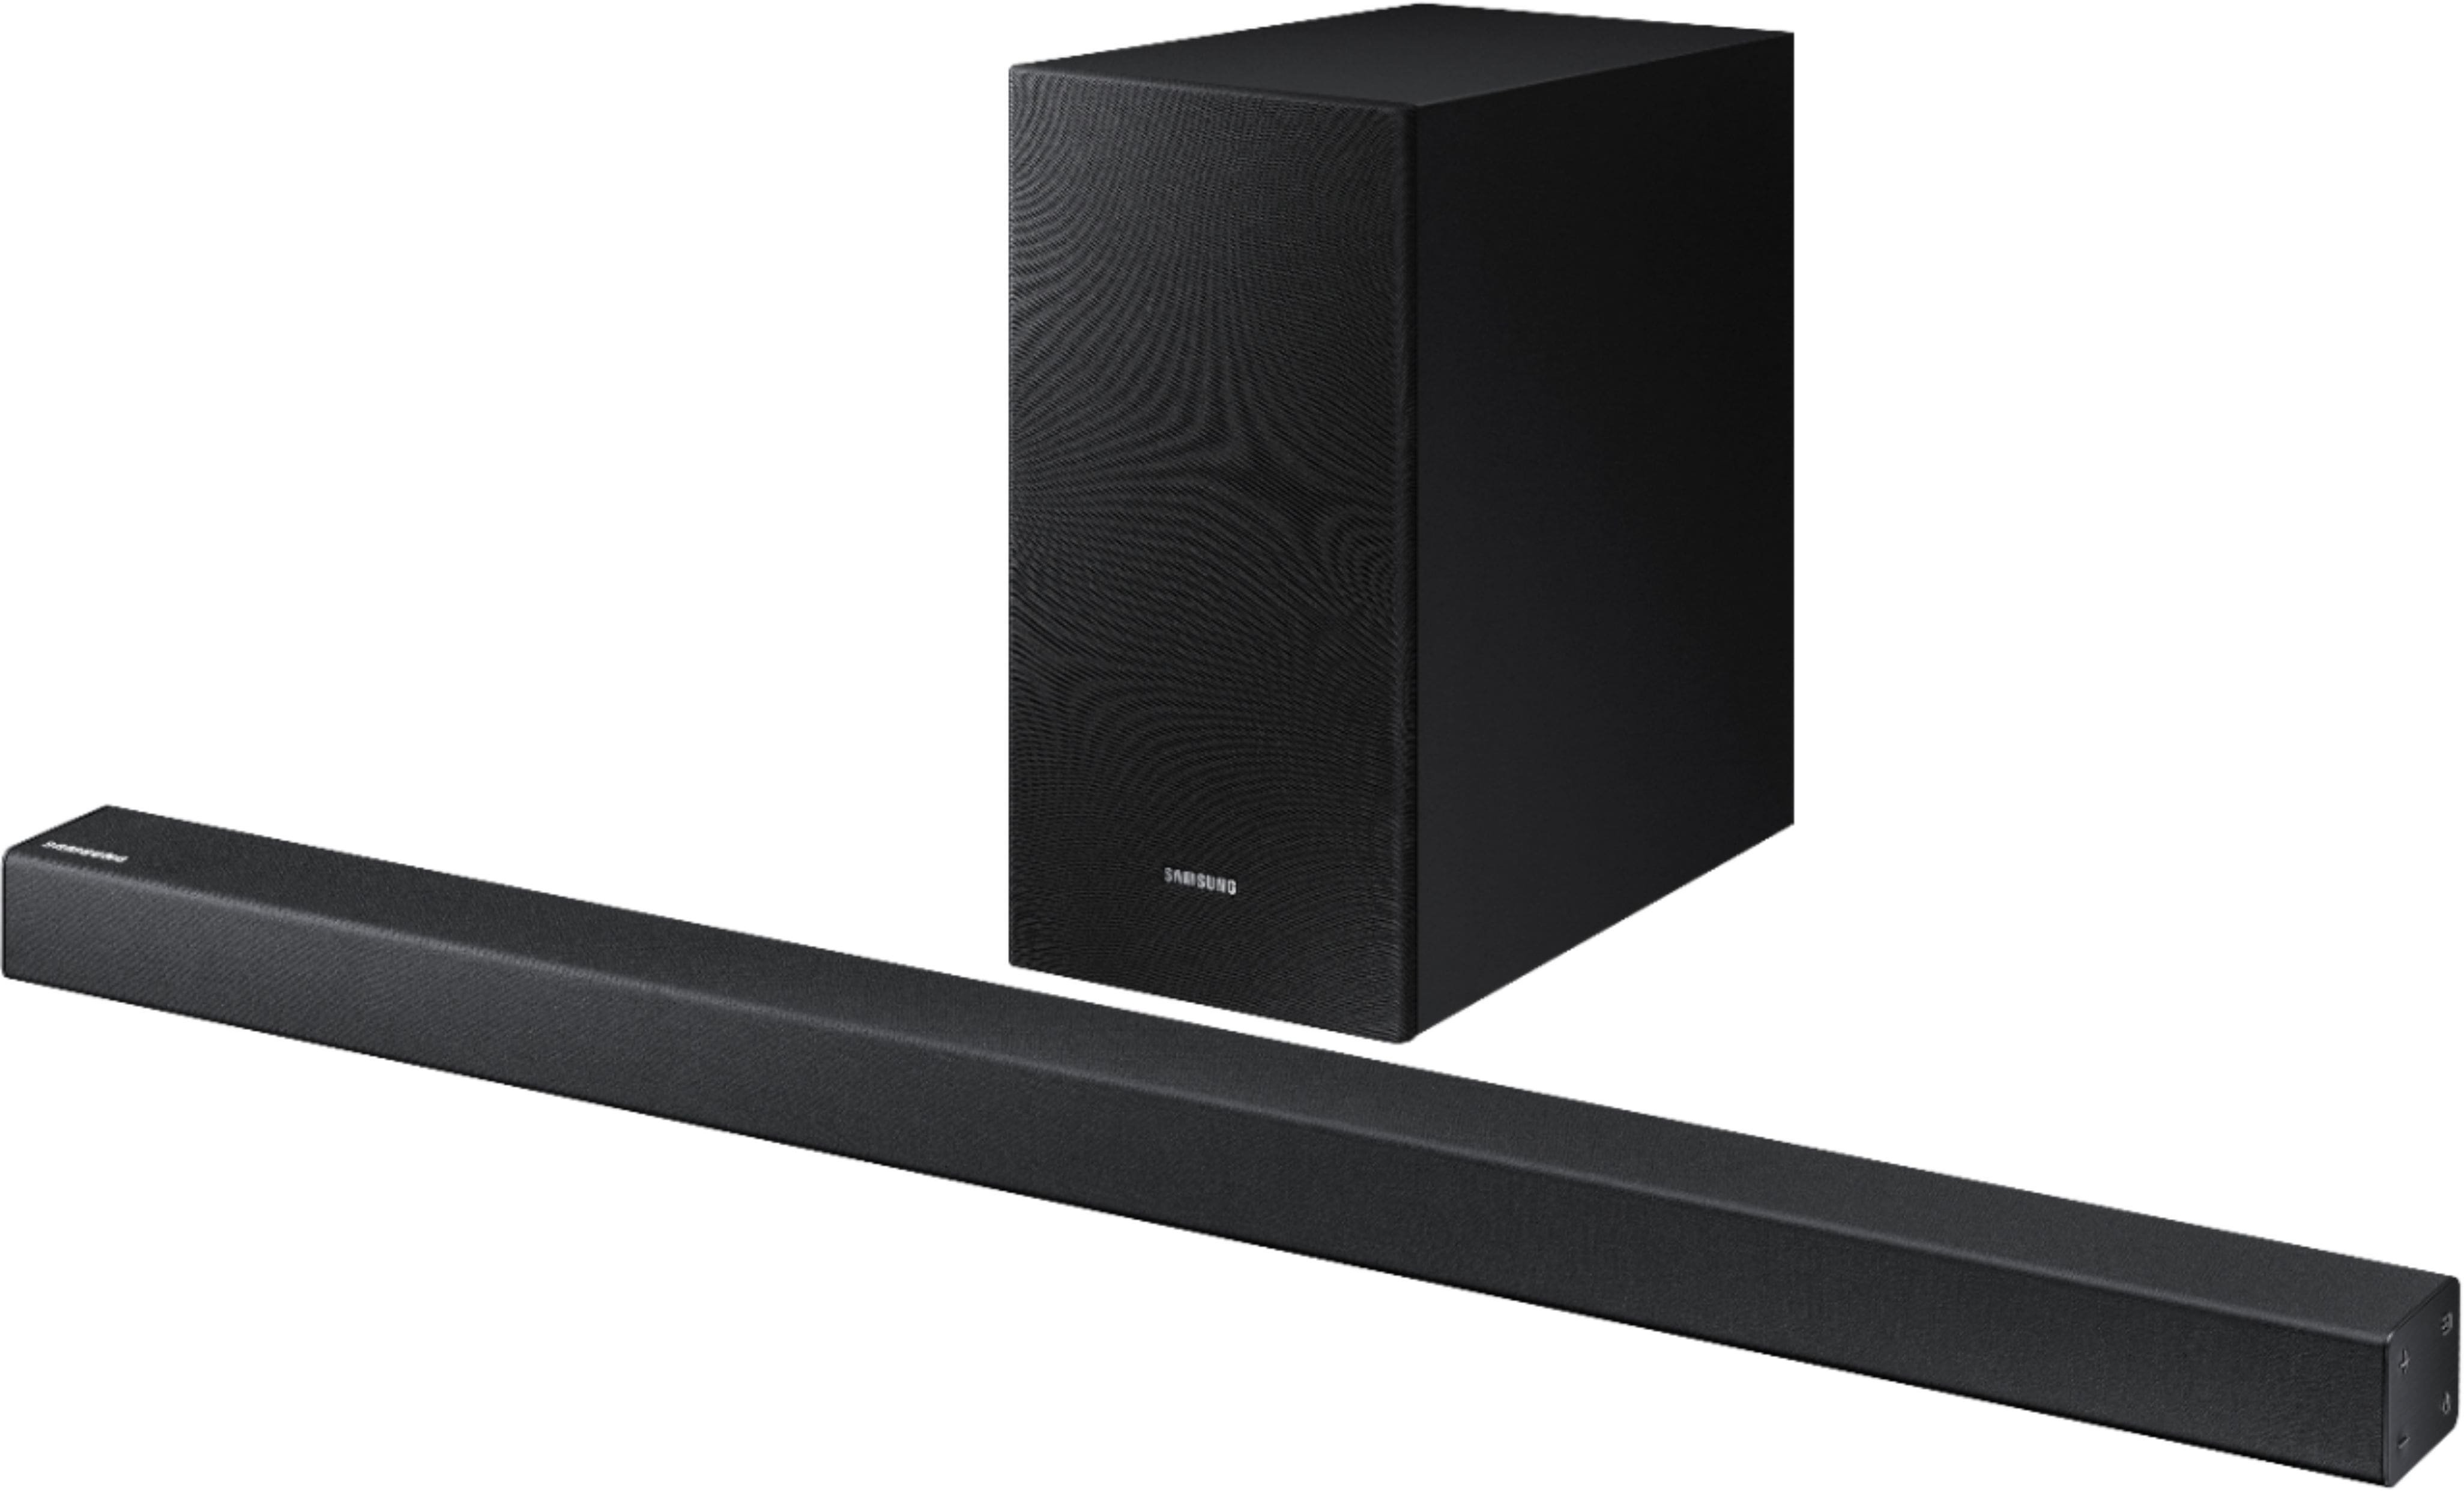 Select Open Box Home Theater Sound Bars up to 75% off YMMV @ Best Buy $63